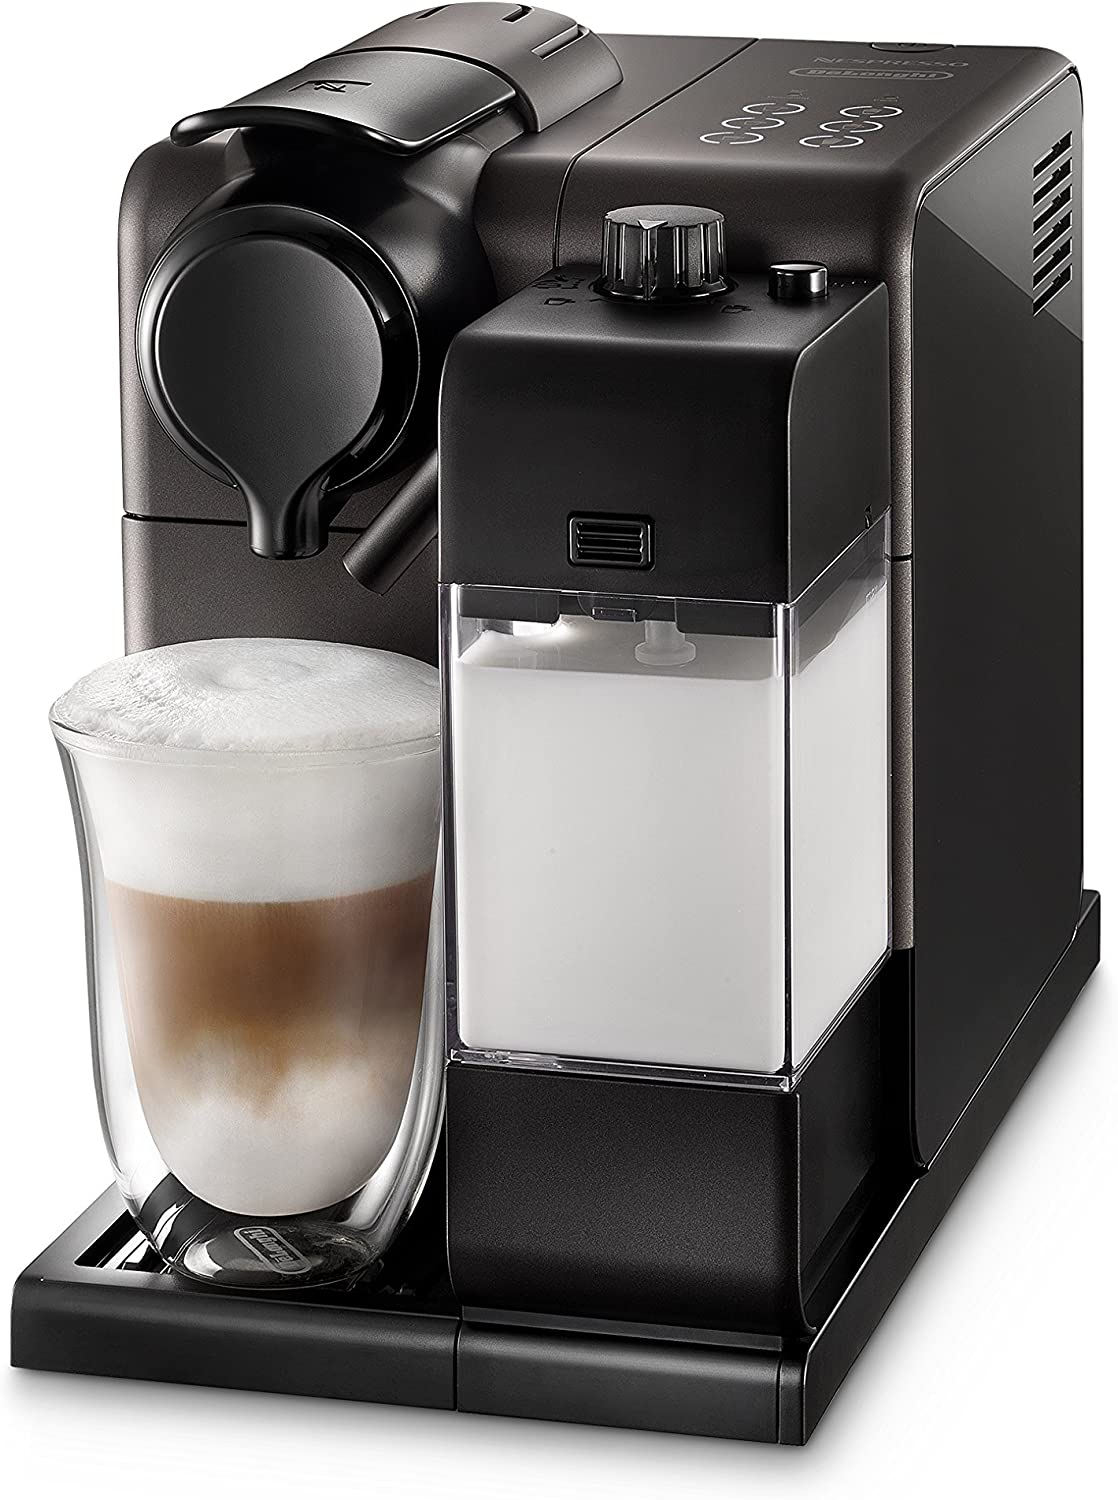 Nespresso EN550B Lattissima Touch Original Espresso Machine with Milk Frother by De Longhi, Black